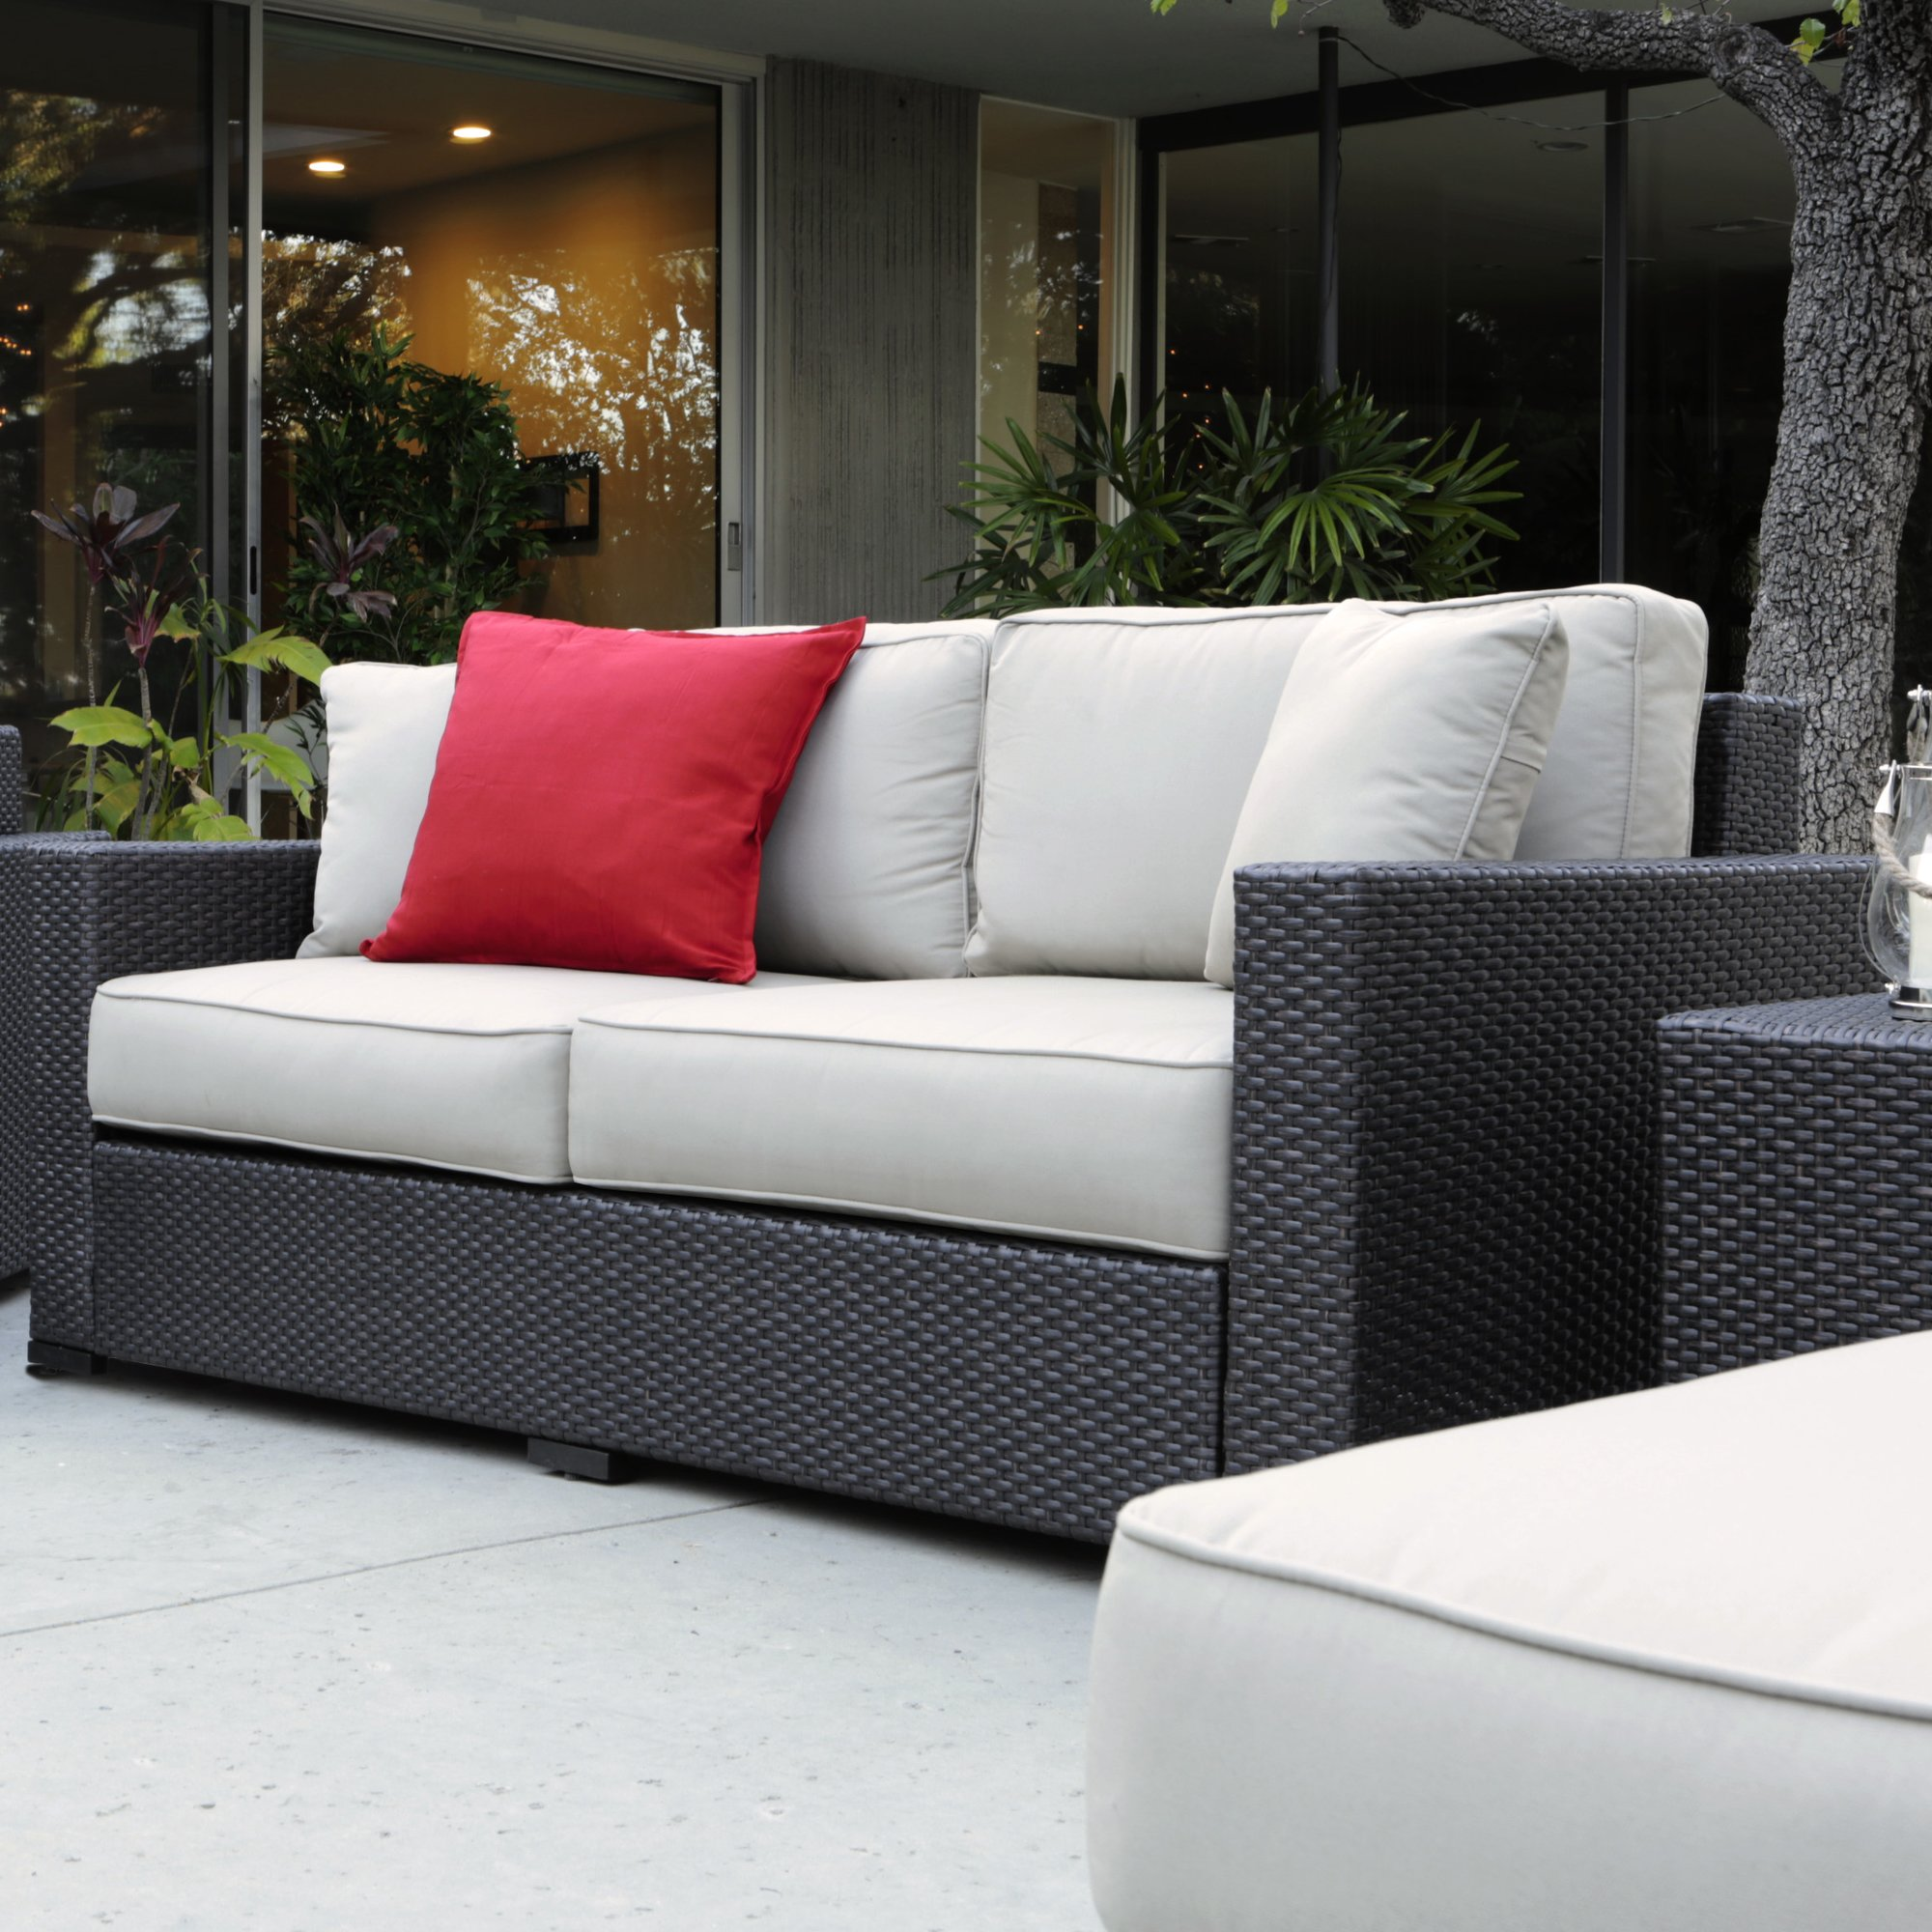 laguna outdoor sofa with cushions WLCWDCE